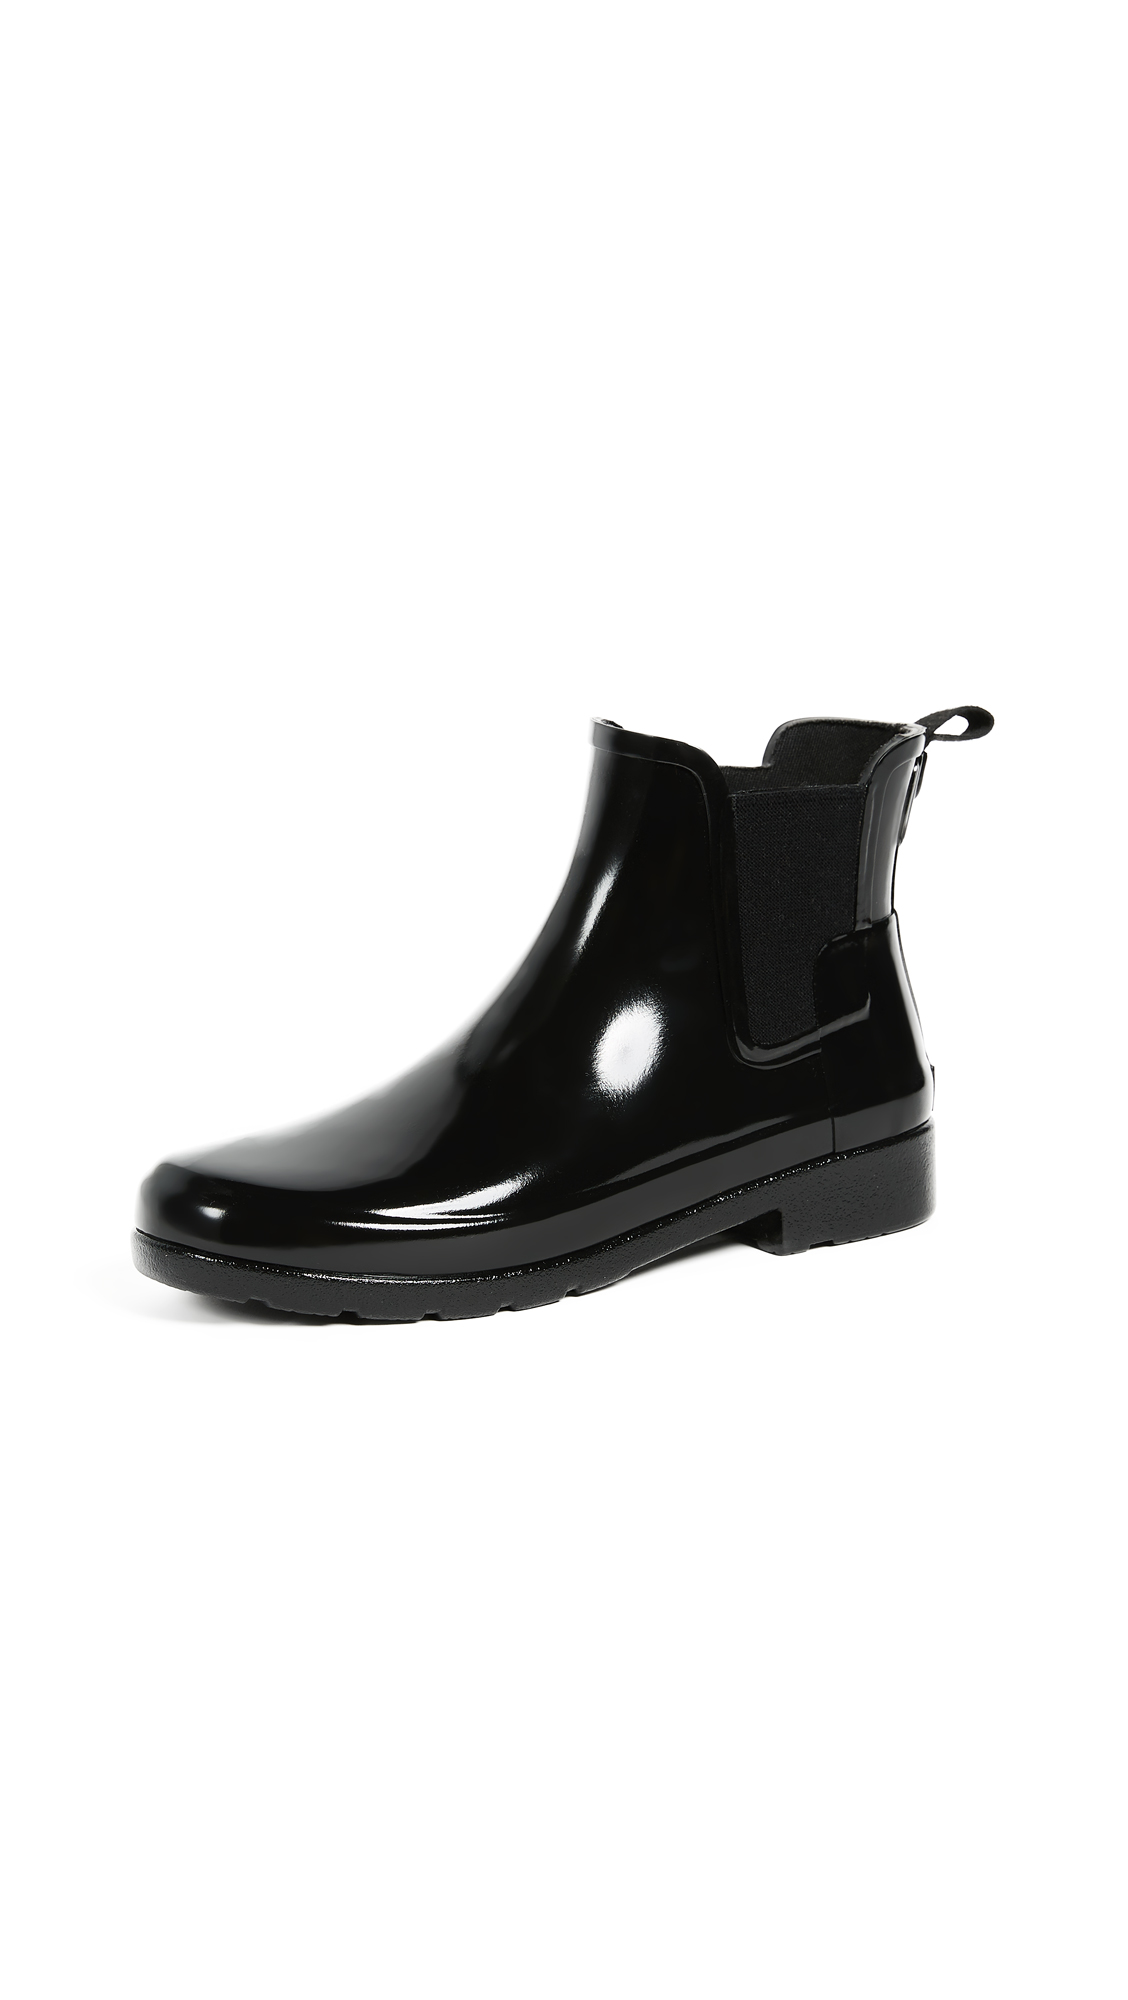 Photo of Hunter Boots Original Refined Chelsea Booties - shop Hunter Boots Booties, Heeled online